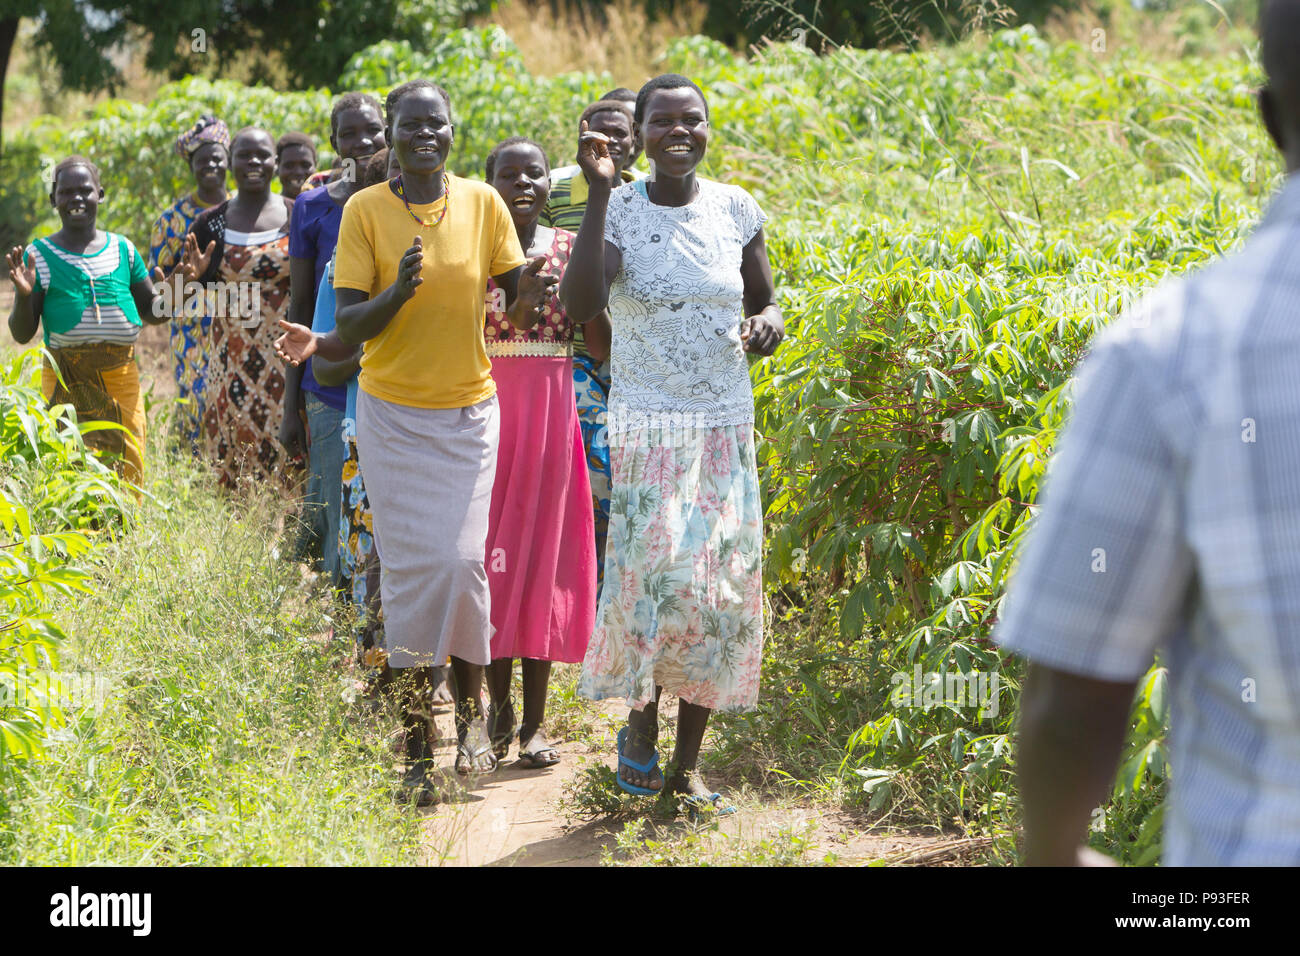 Adjumani, Uganda - Women of a village community meet a singing and dancing on a path. - Stock Image